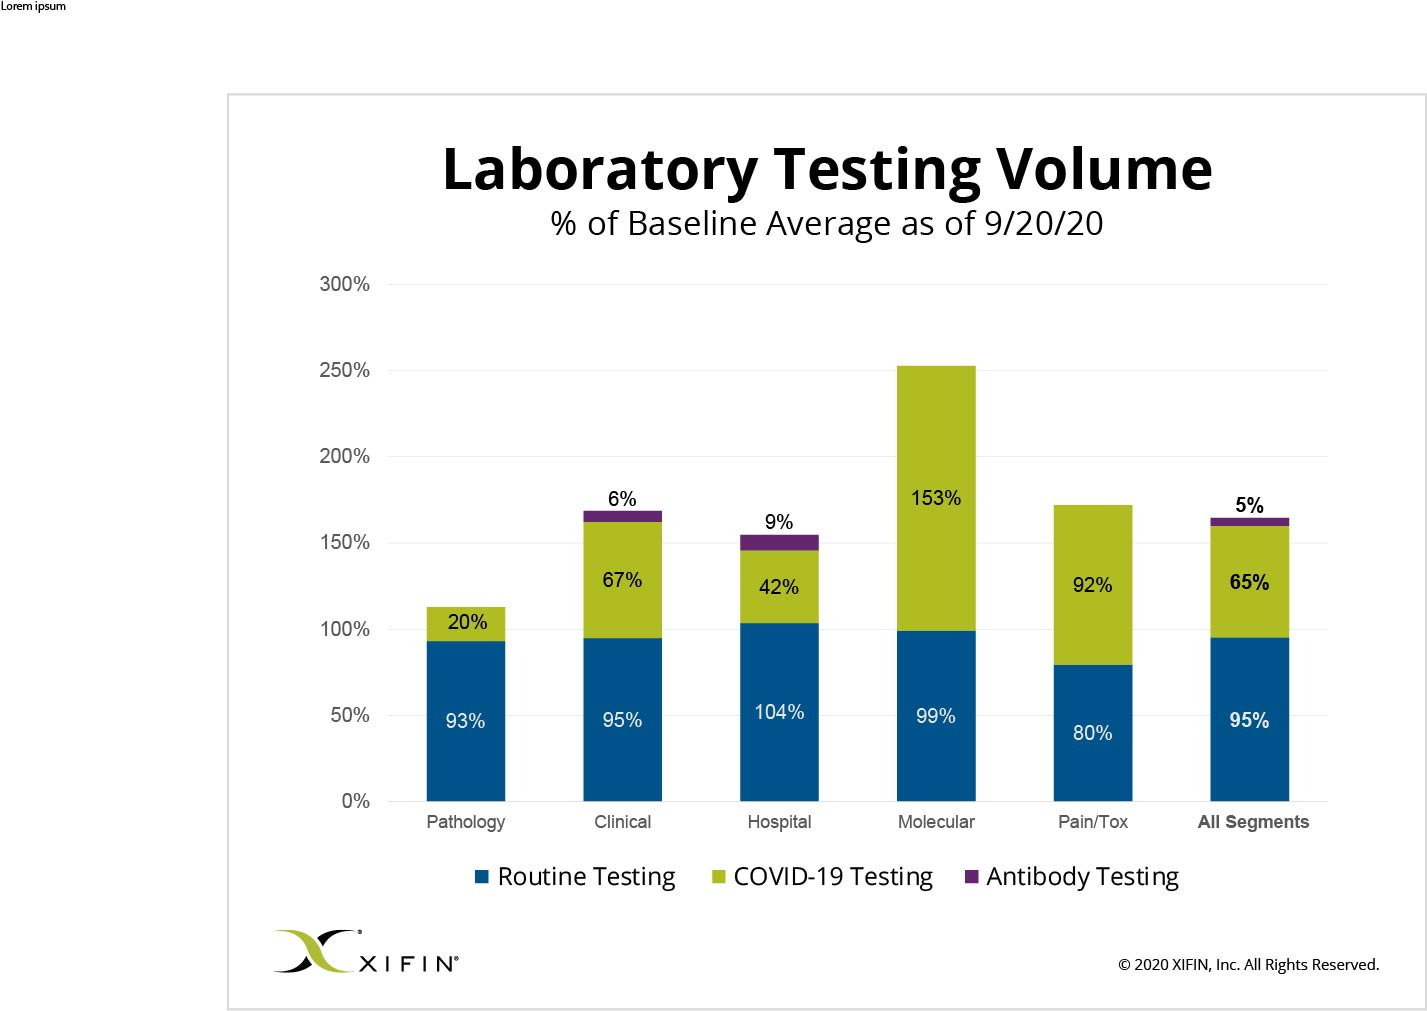 XIFIN_Laboratory_Testing_Volume_9-20-20